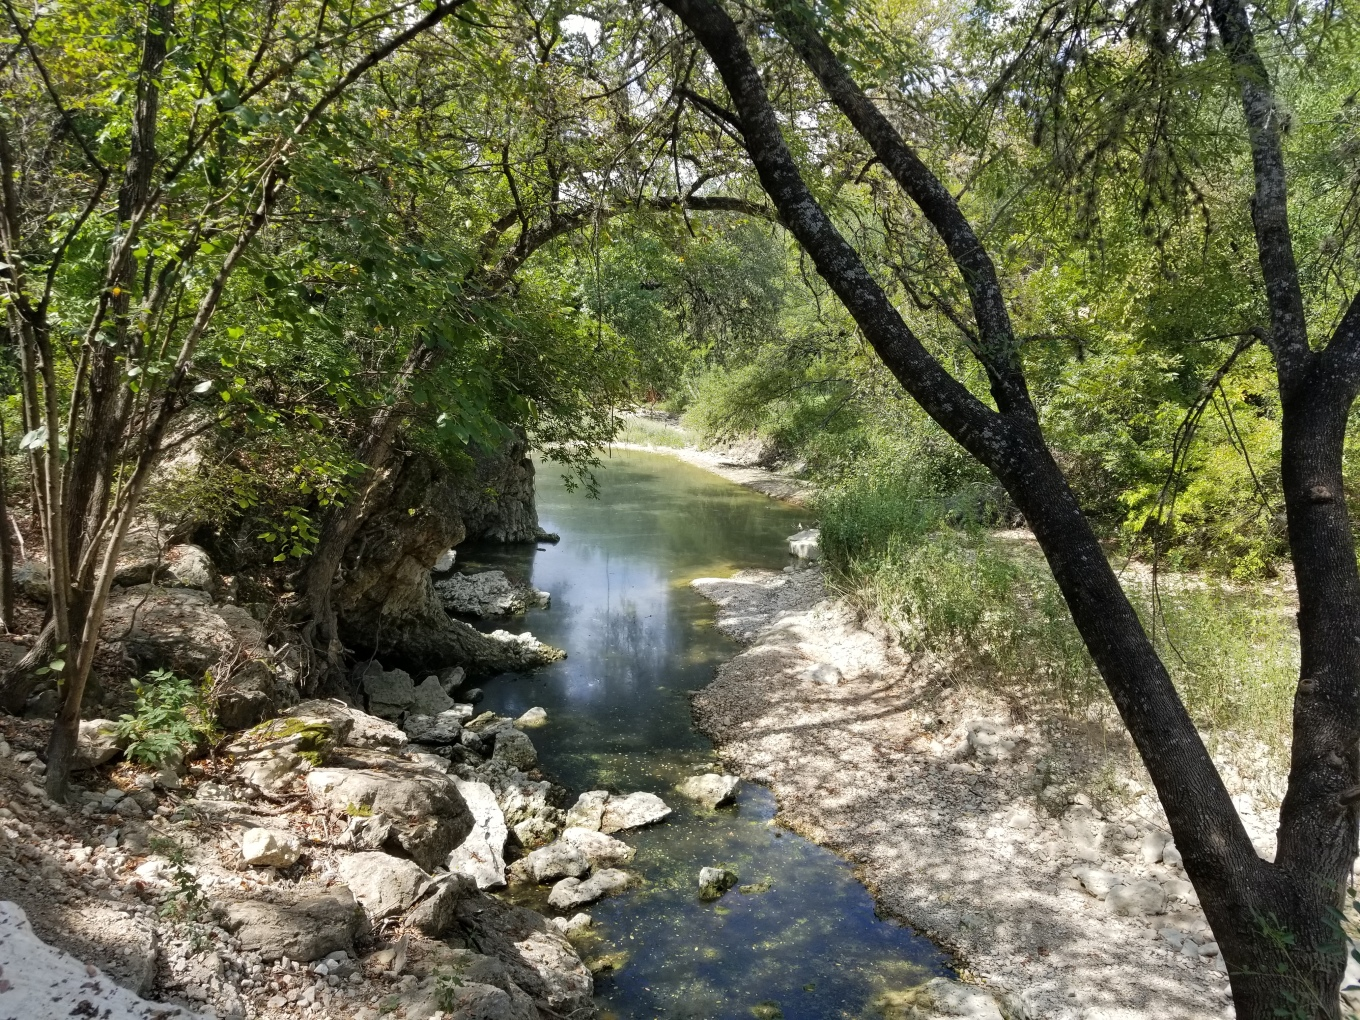 The view of the Shoal Creek from the Shoal Creek Trail in Austin, Texas